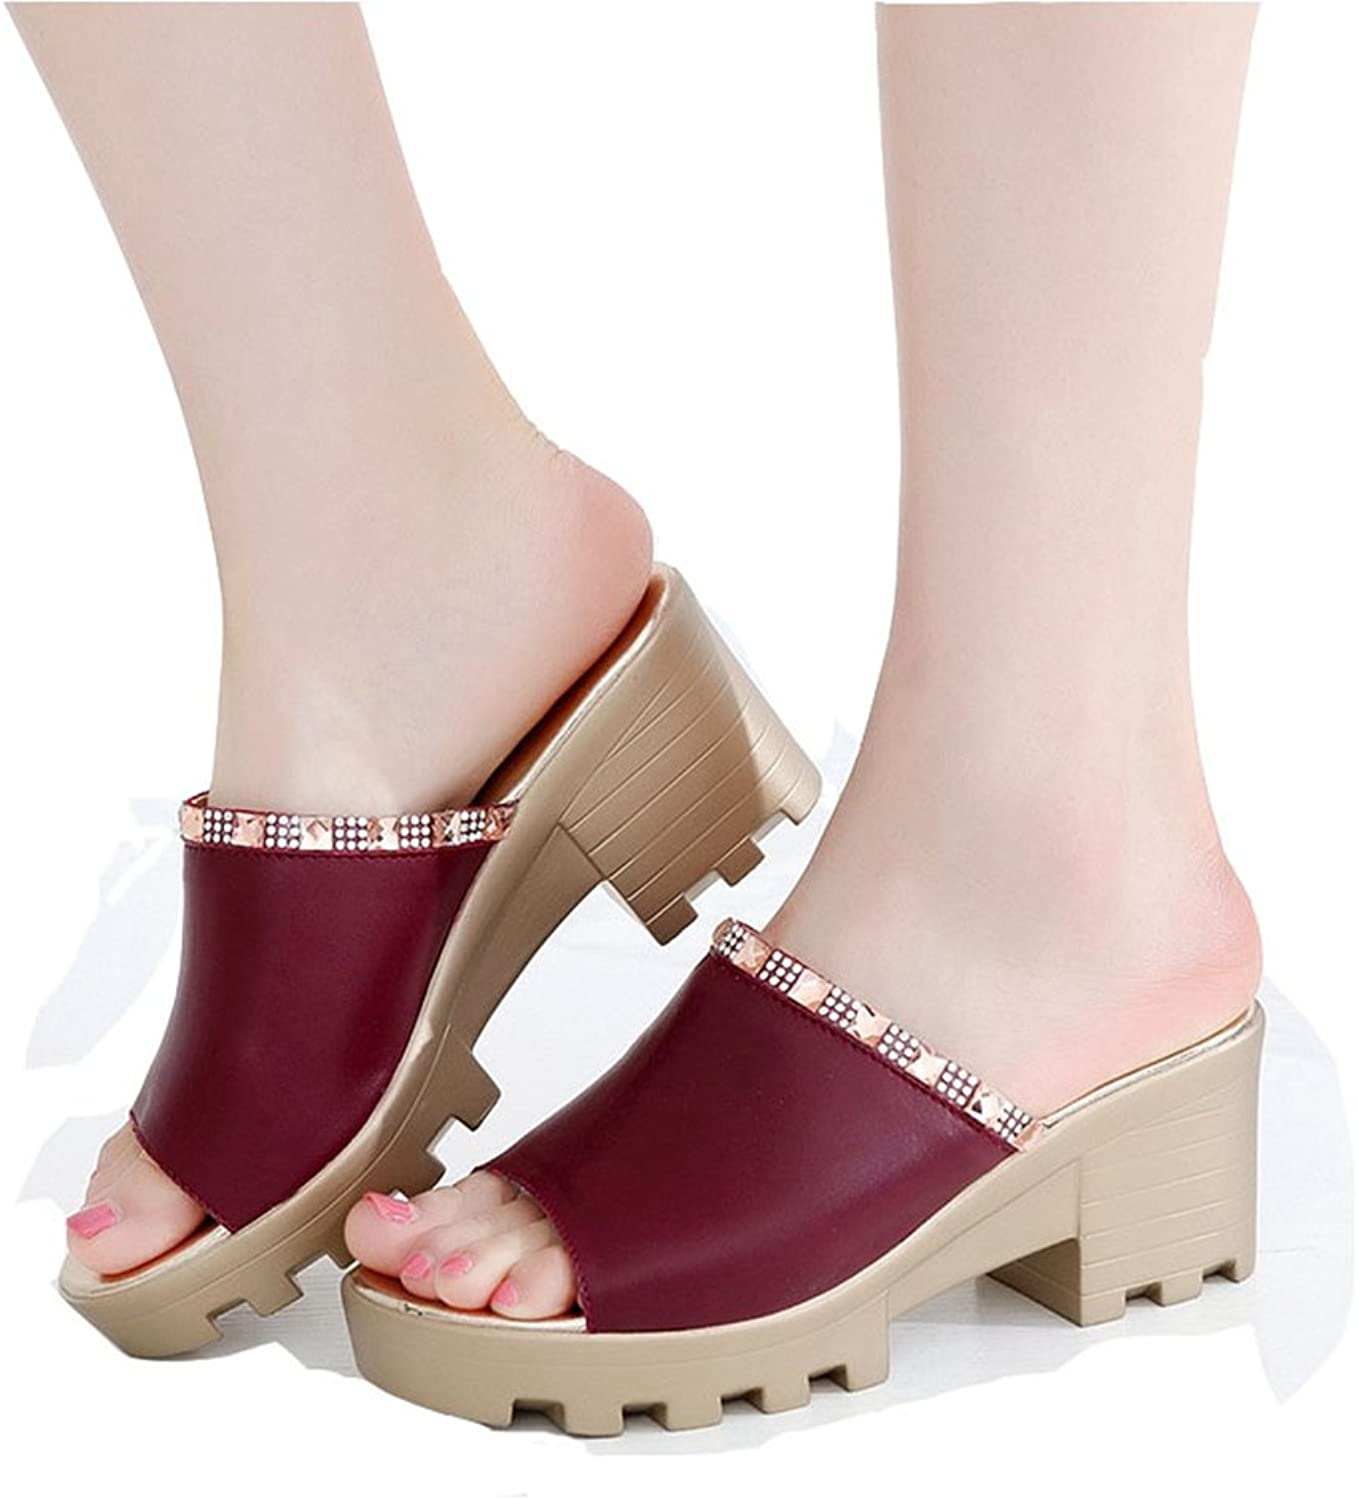 T-JULY Women Ladies Wedge Platform Heel Sandals Leather Slippers Fashion Fish Mouth Water Drill Sandals